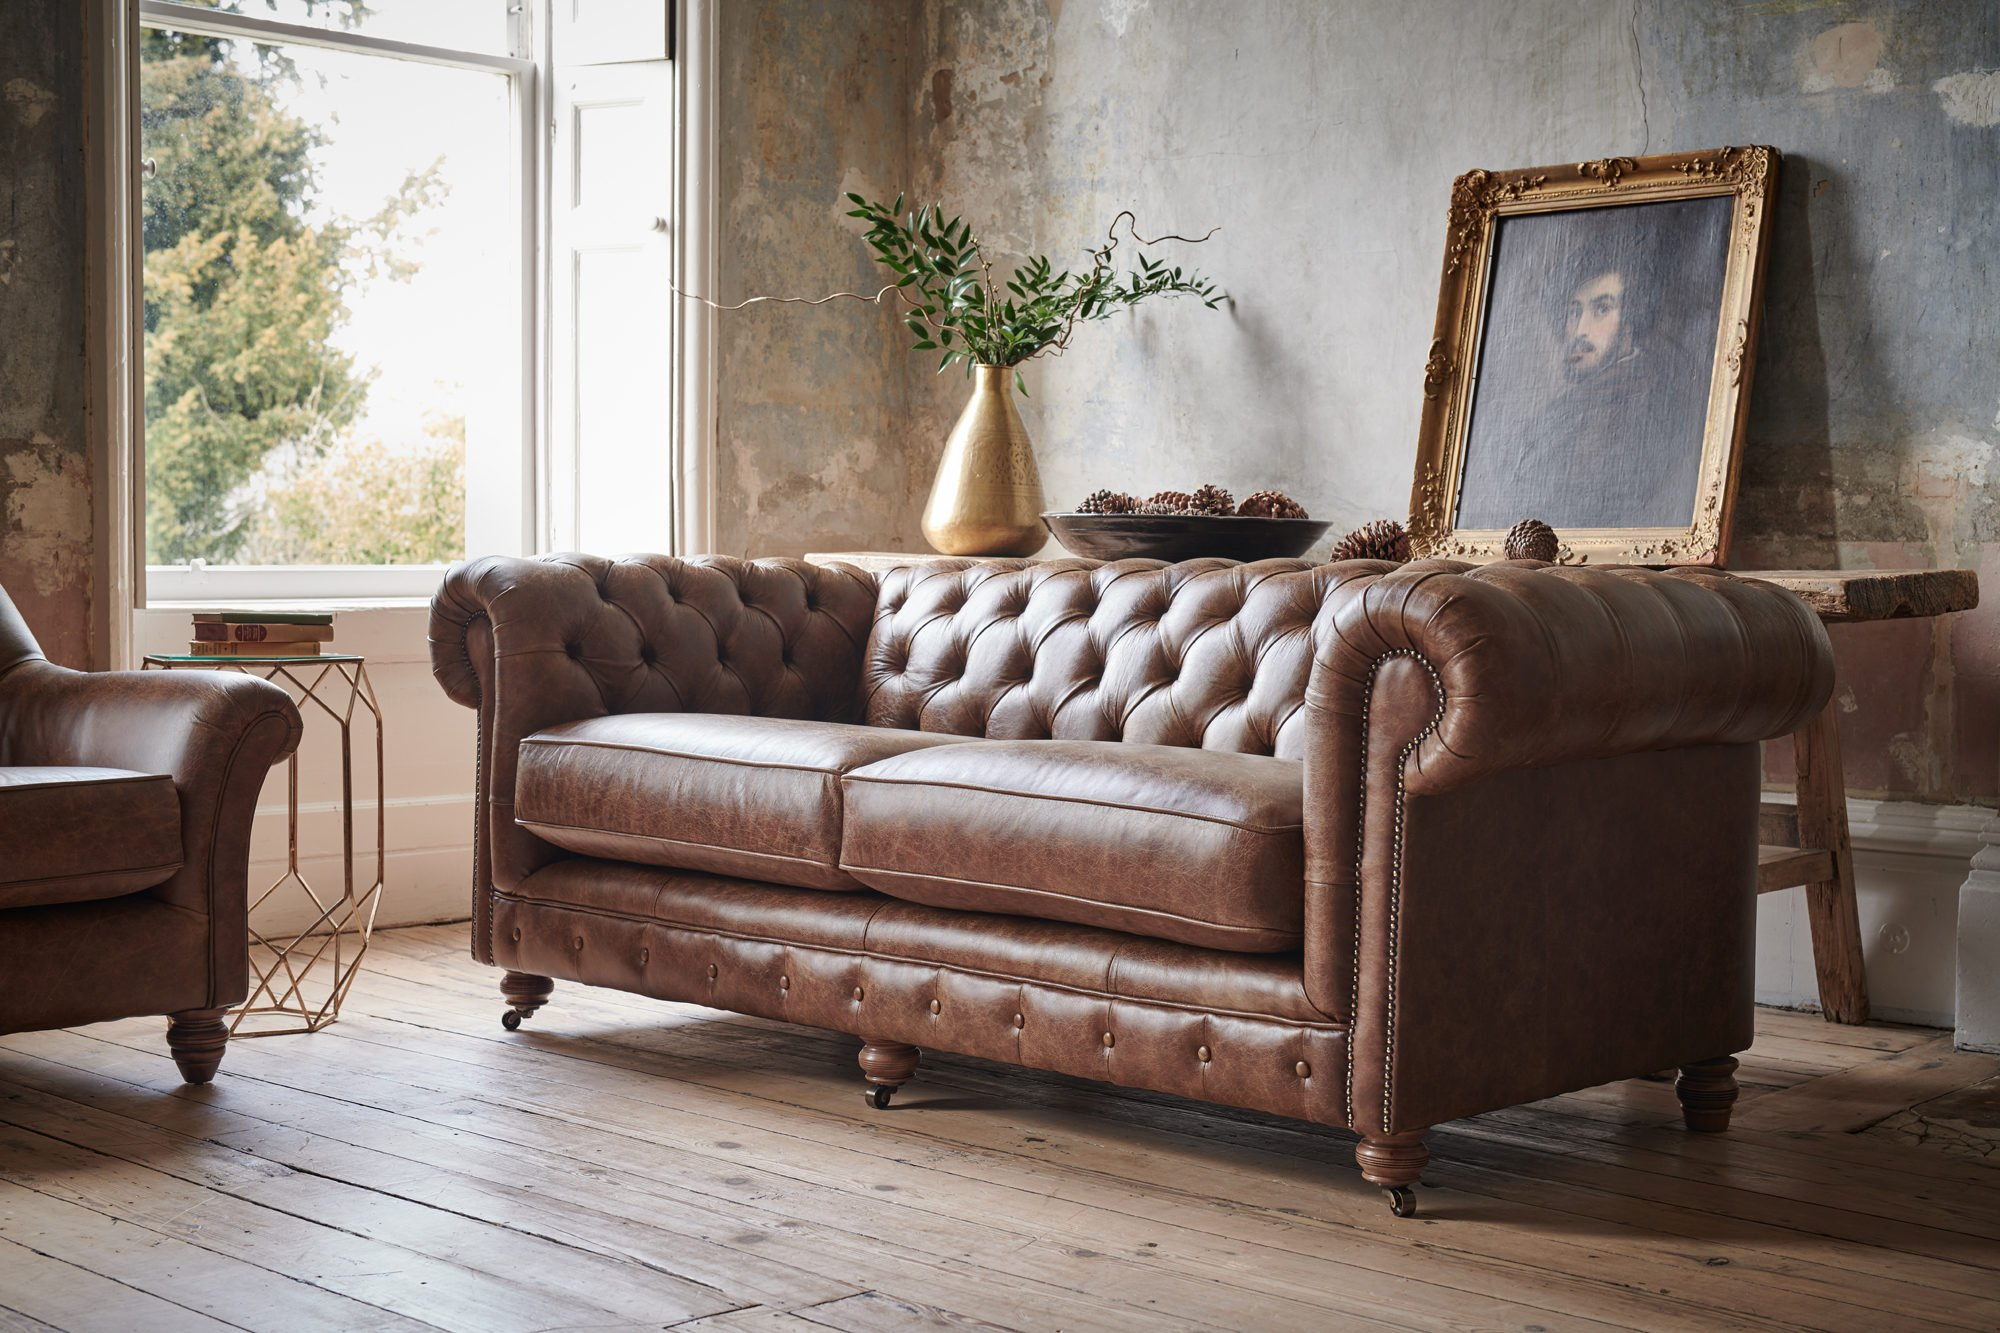 Chesterfield Leather Sofa Sale Handmade Leather Chesterfield Sofas With Up To 25 Off Thomas Lloyd